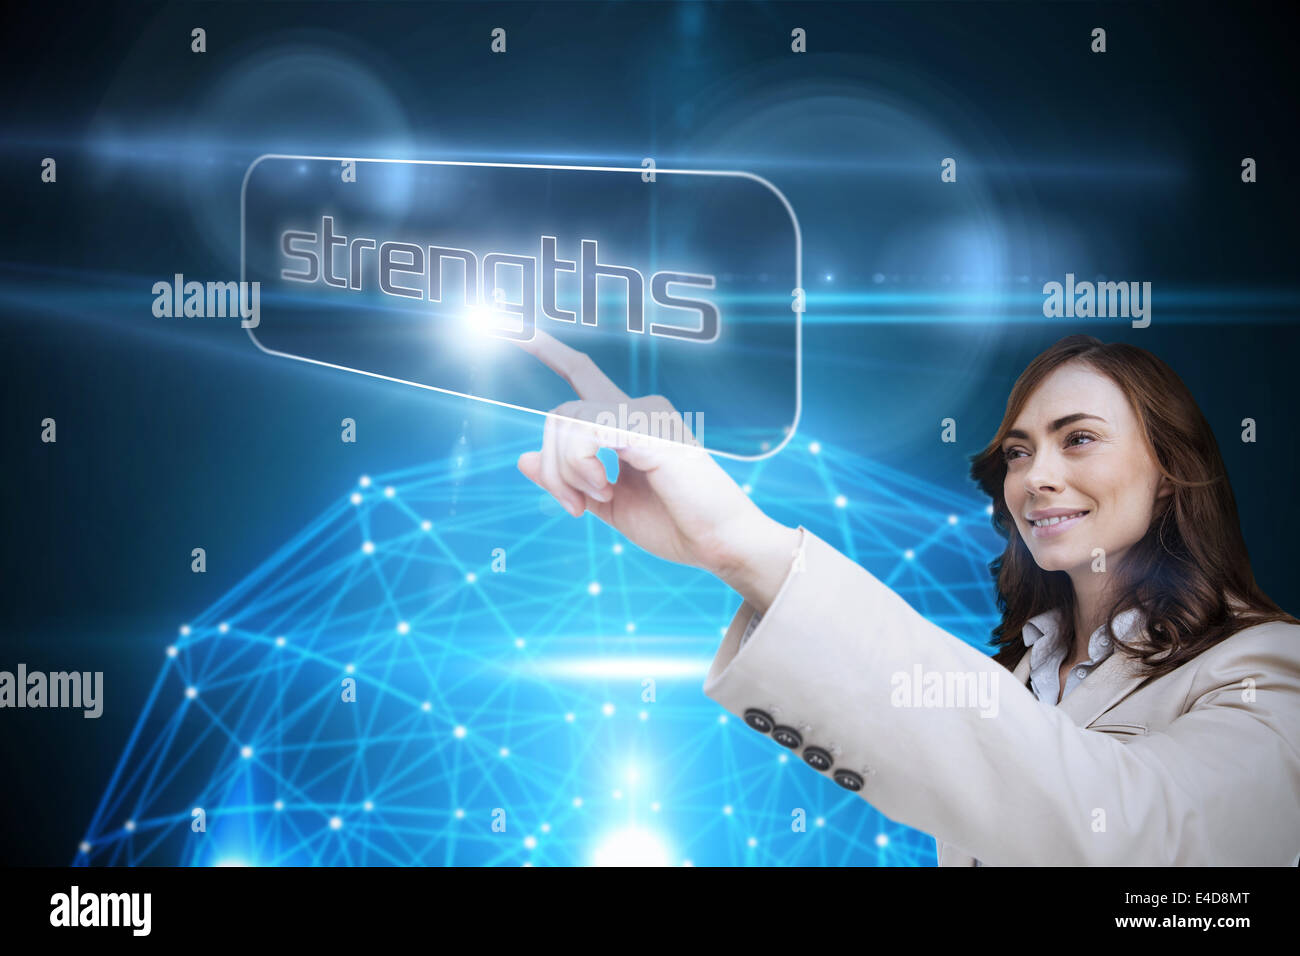 Businesswoman pointing to word strengths - Stock Image